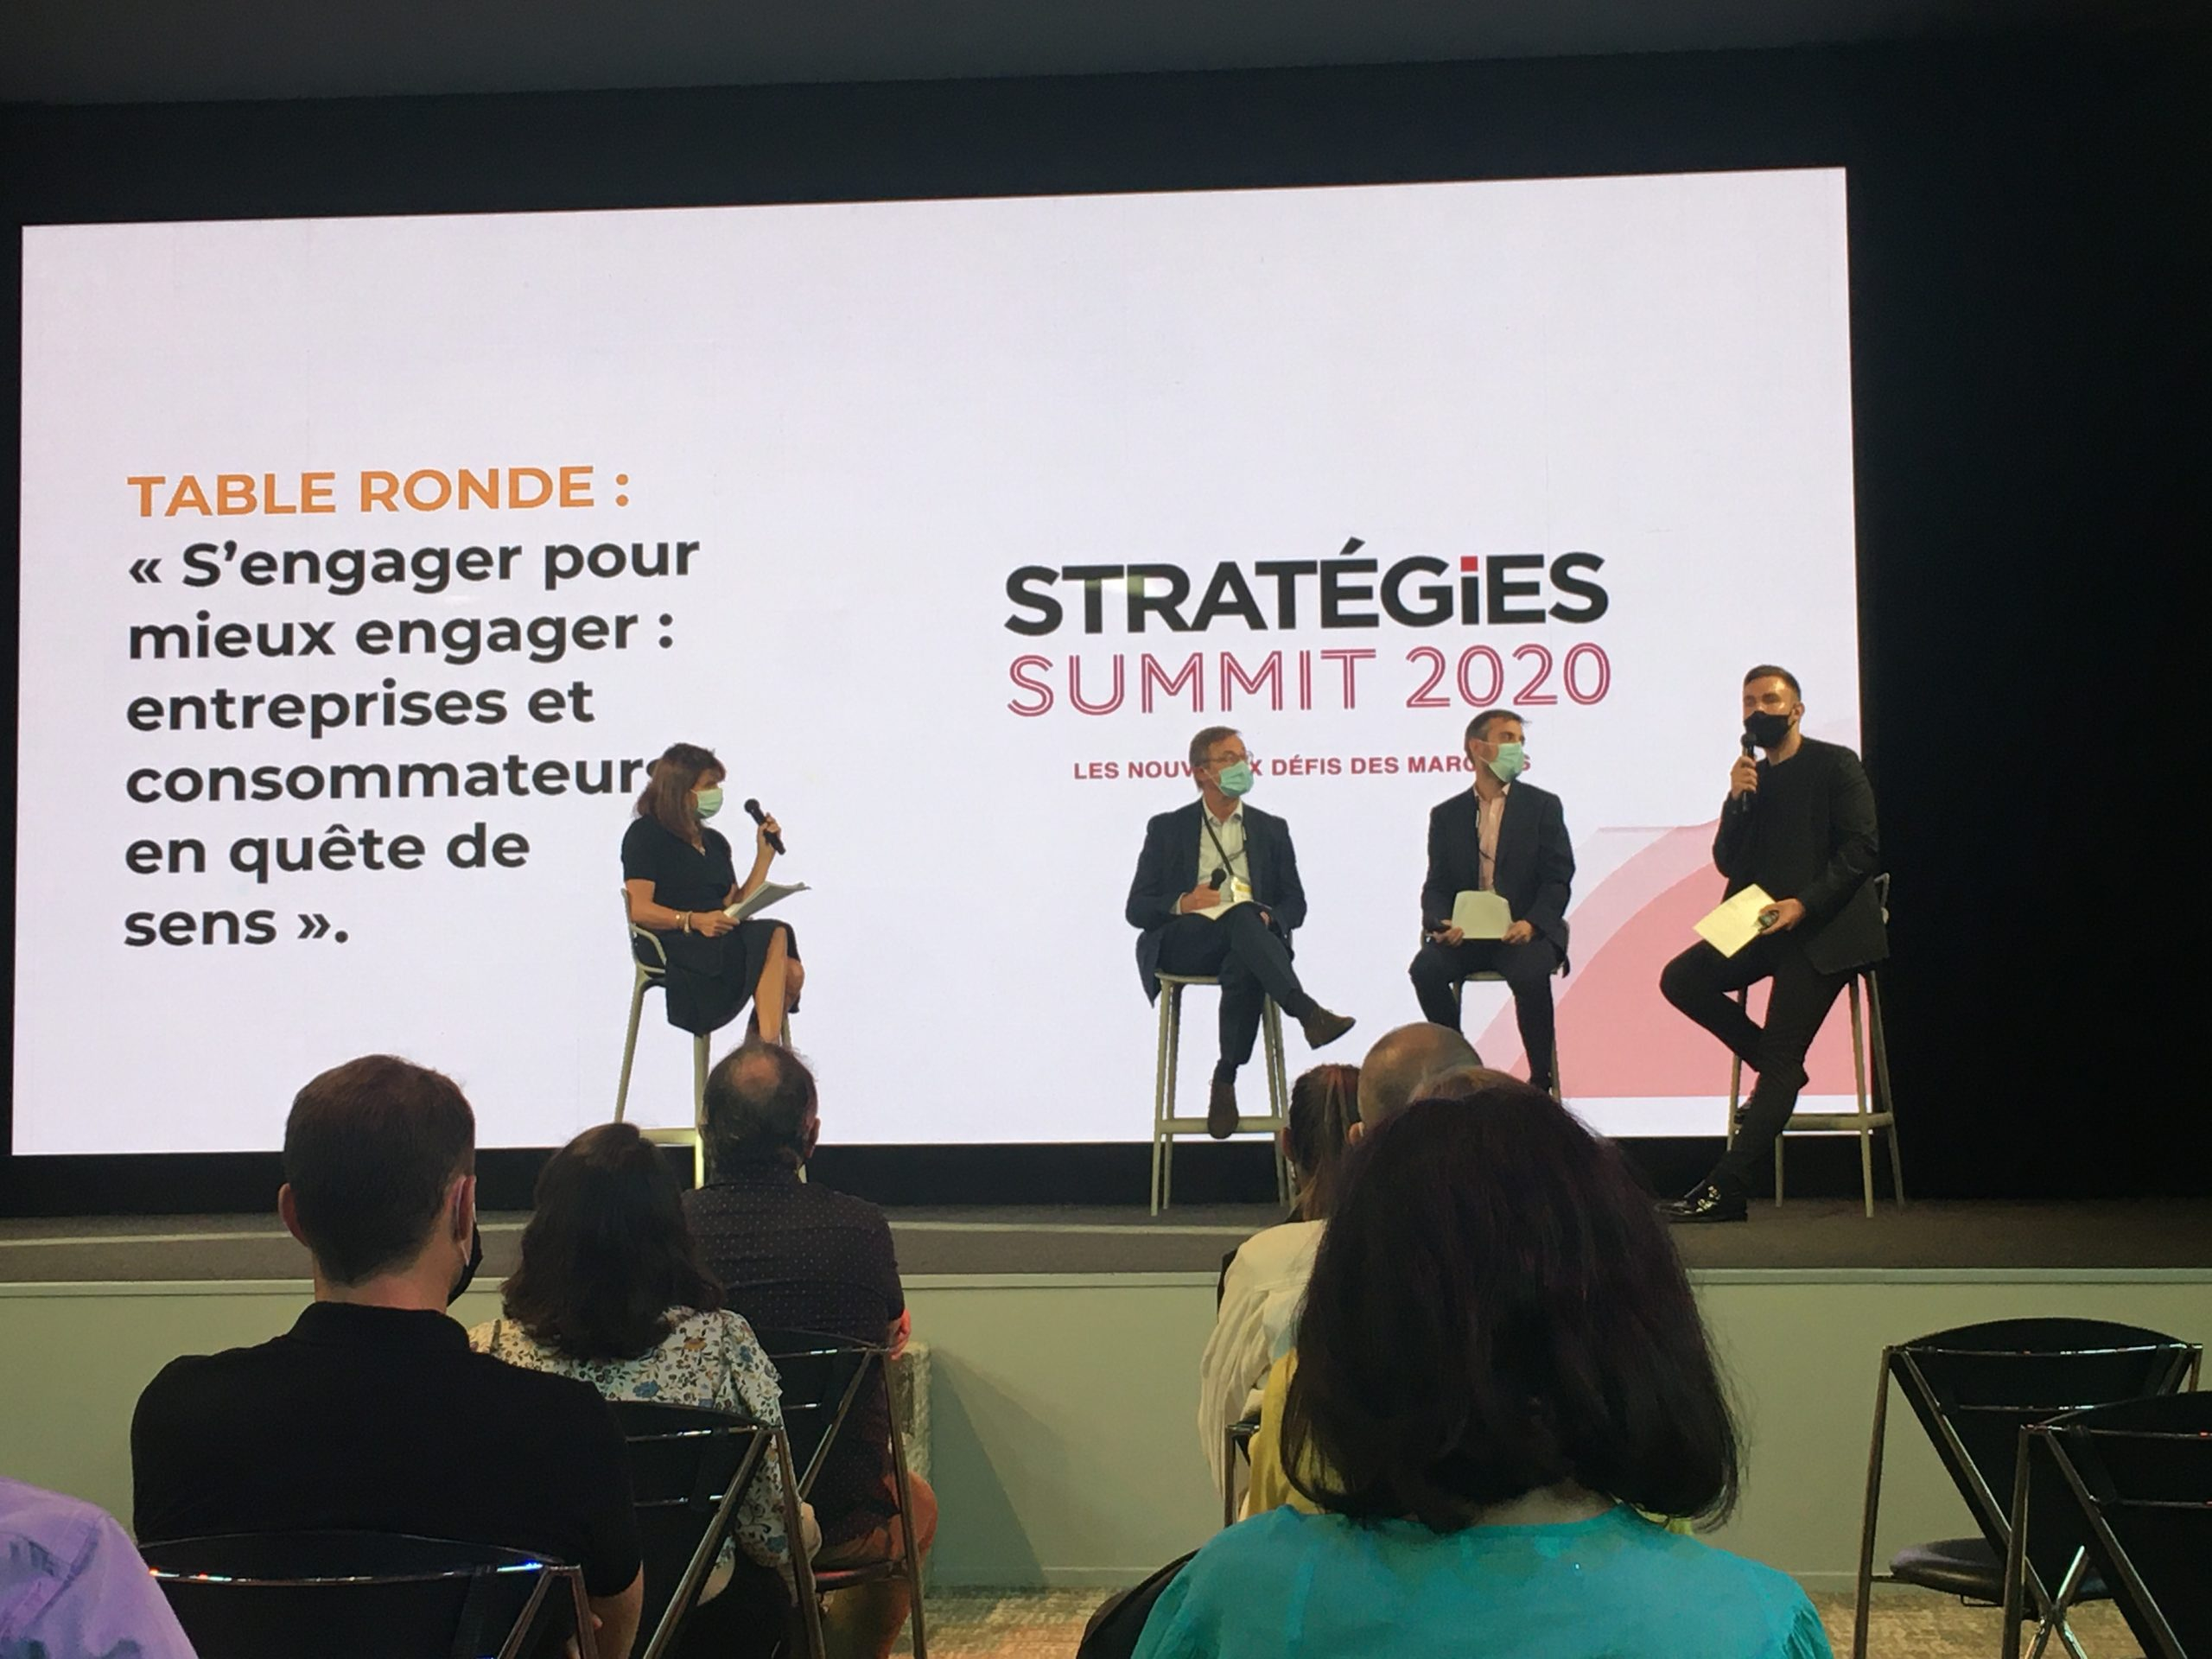 Table ronde_strategie summit 2020